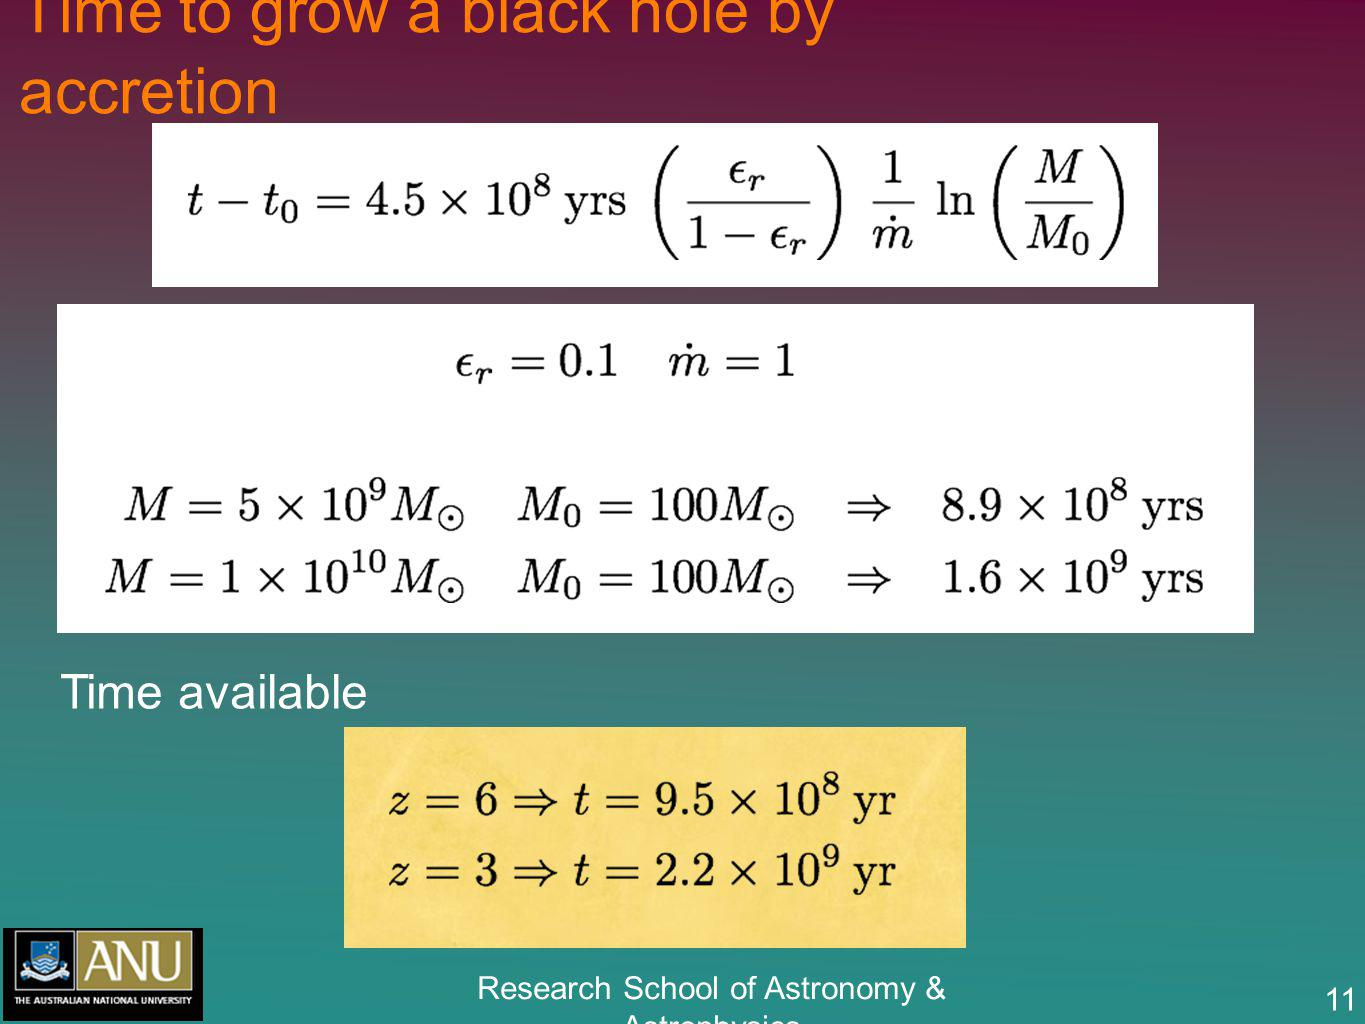 Research School of Astronomy & Astrophysics 11 Time to grow a black hole by accretion Time available